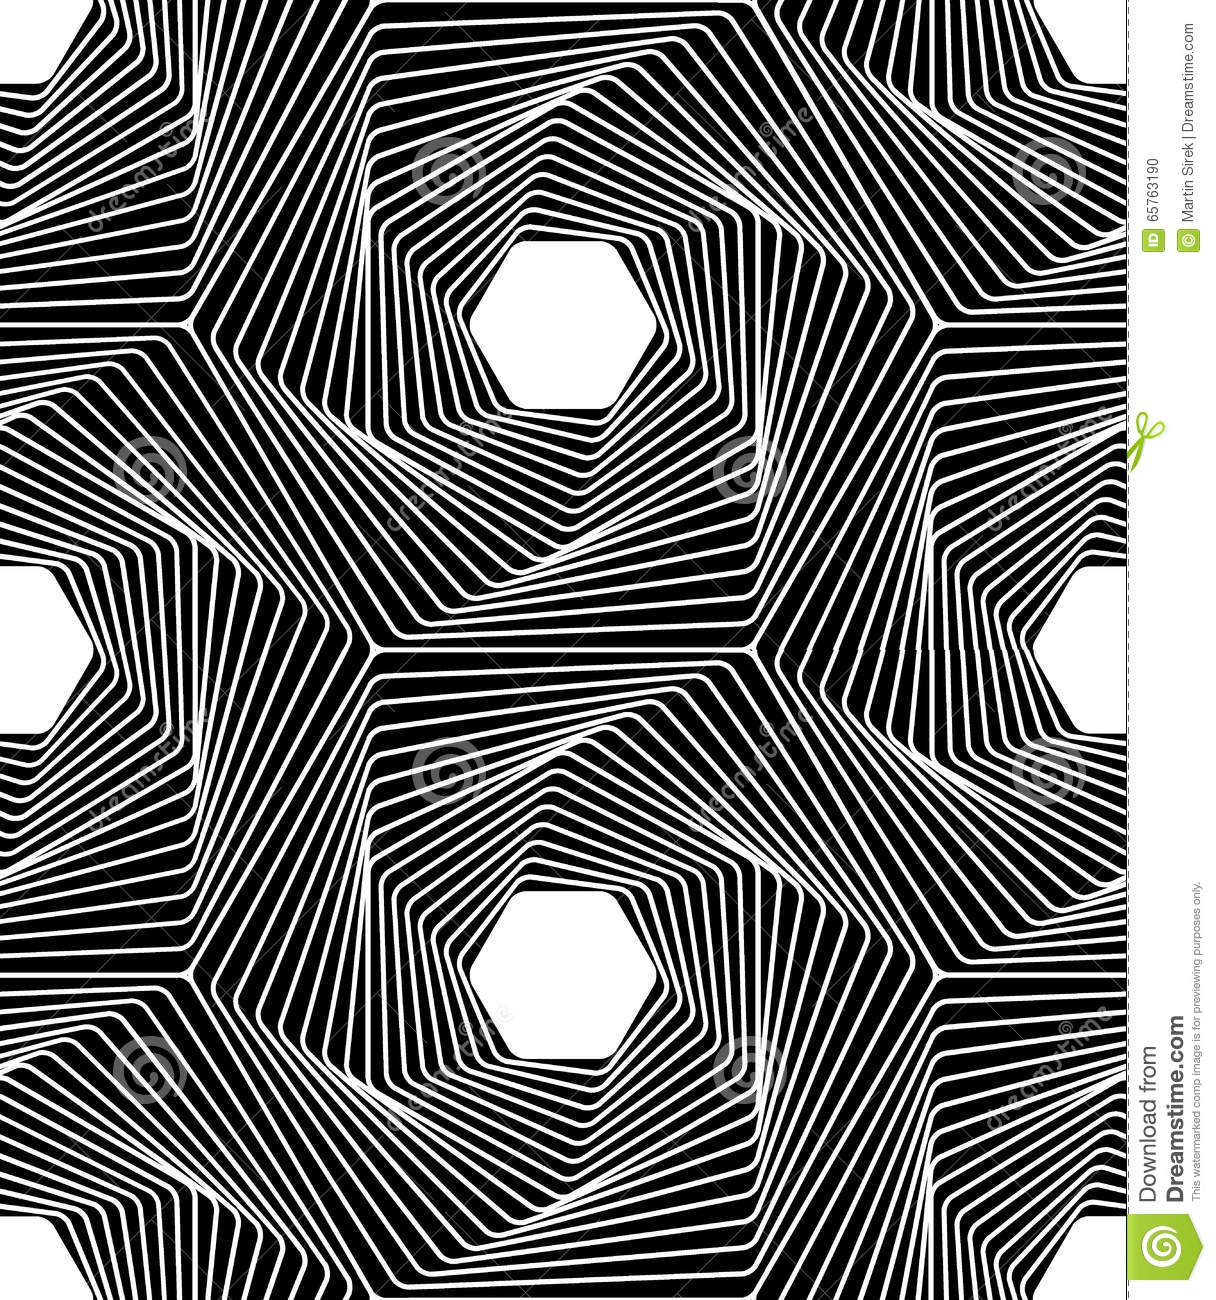 Line Art Patterns : Seamless black and white abstract modern line pattern